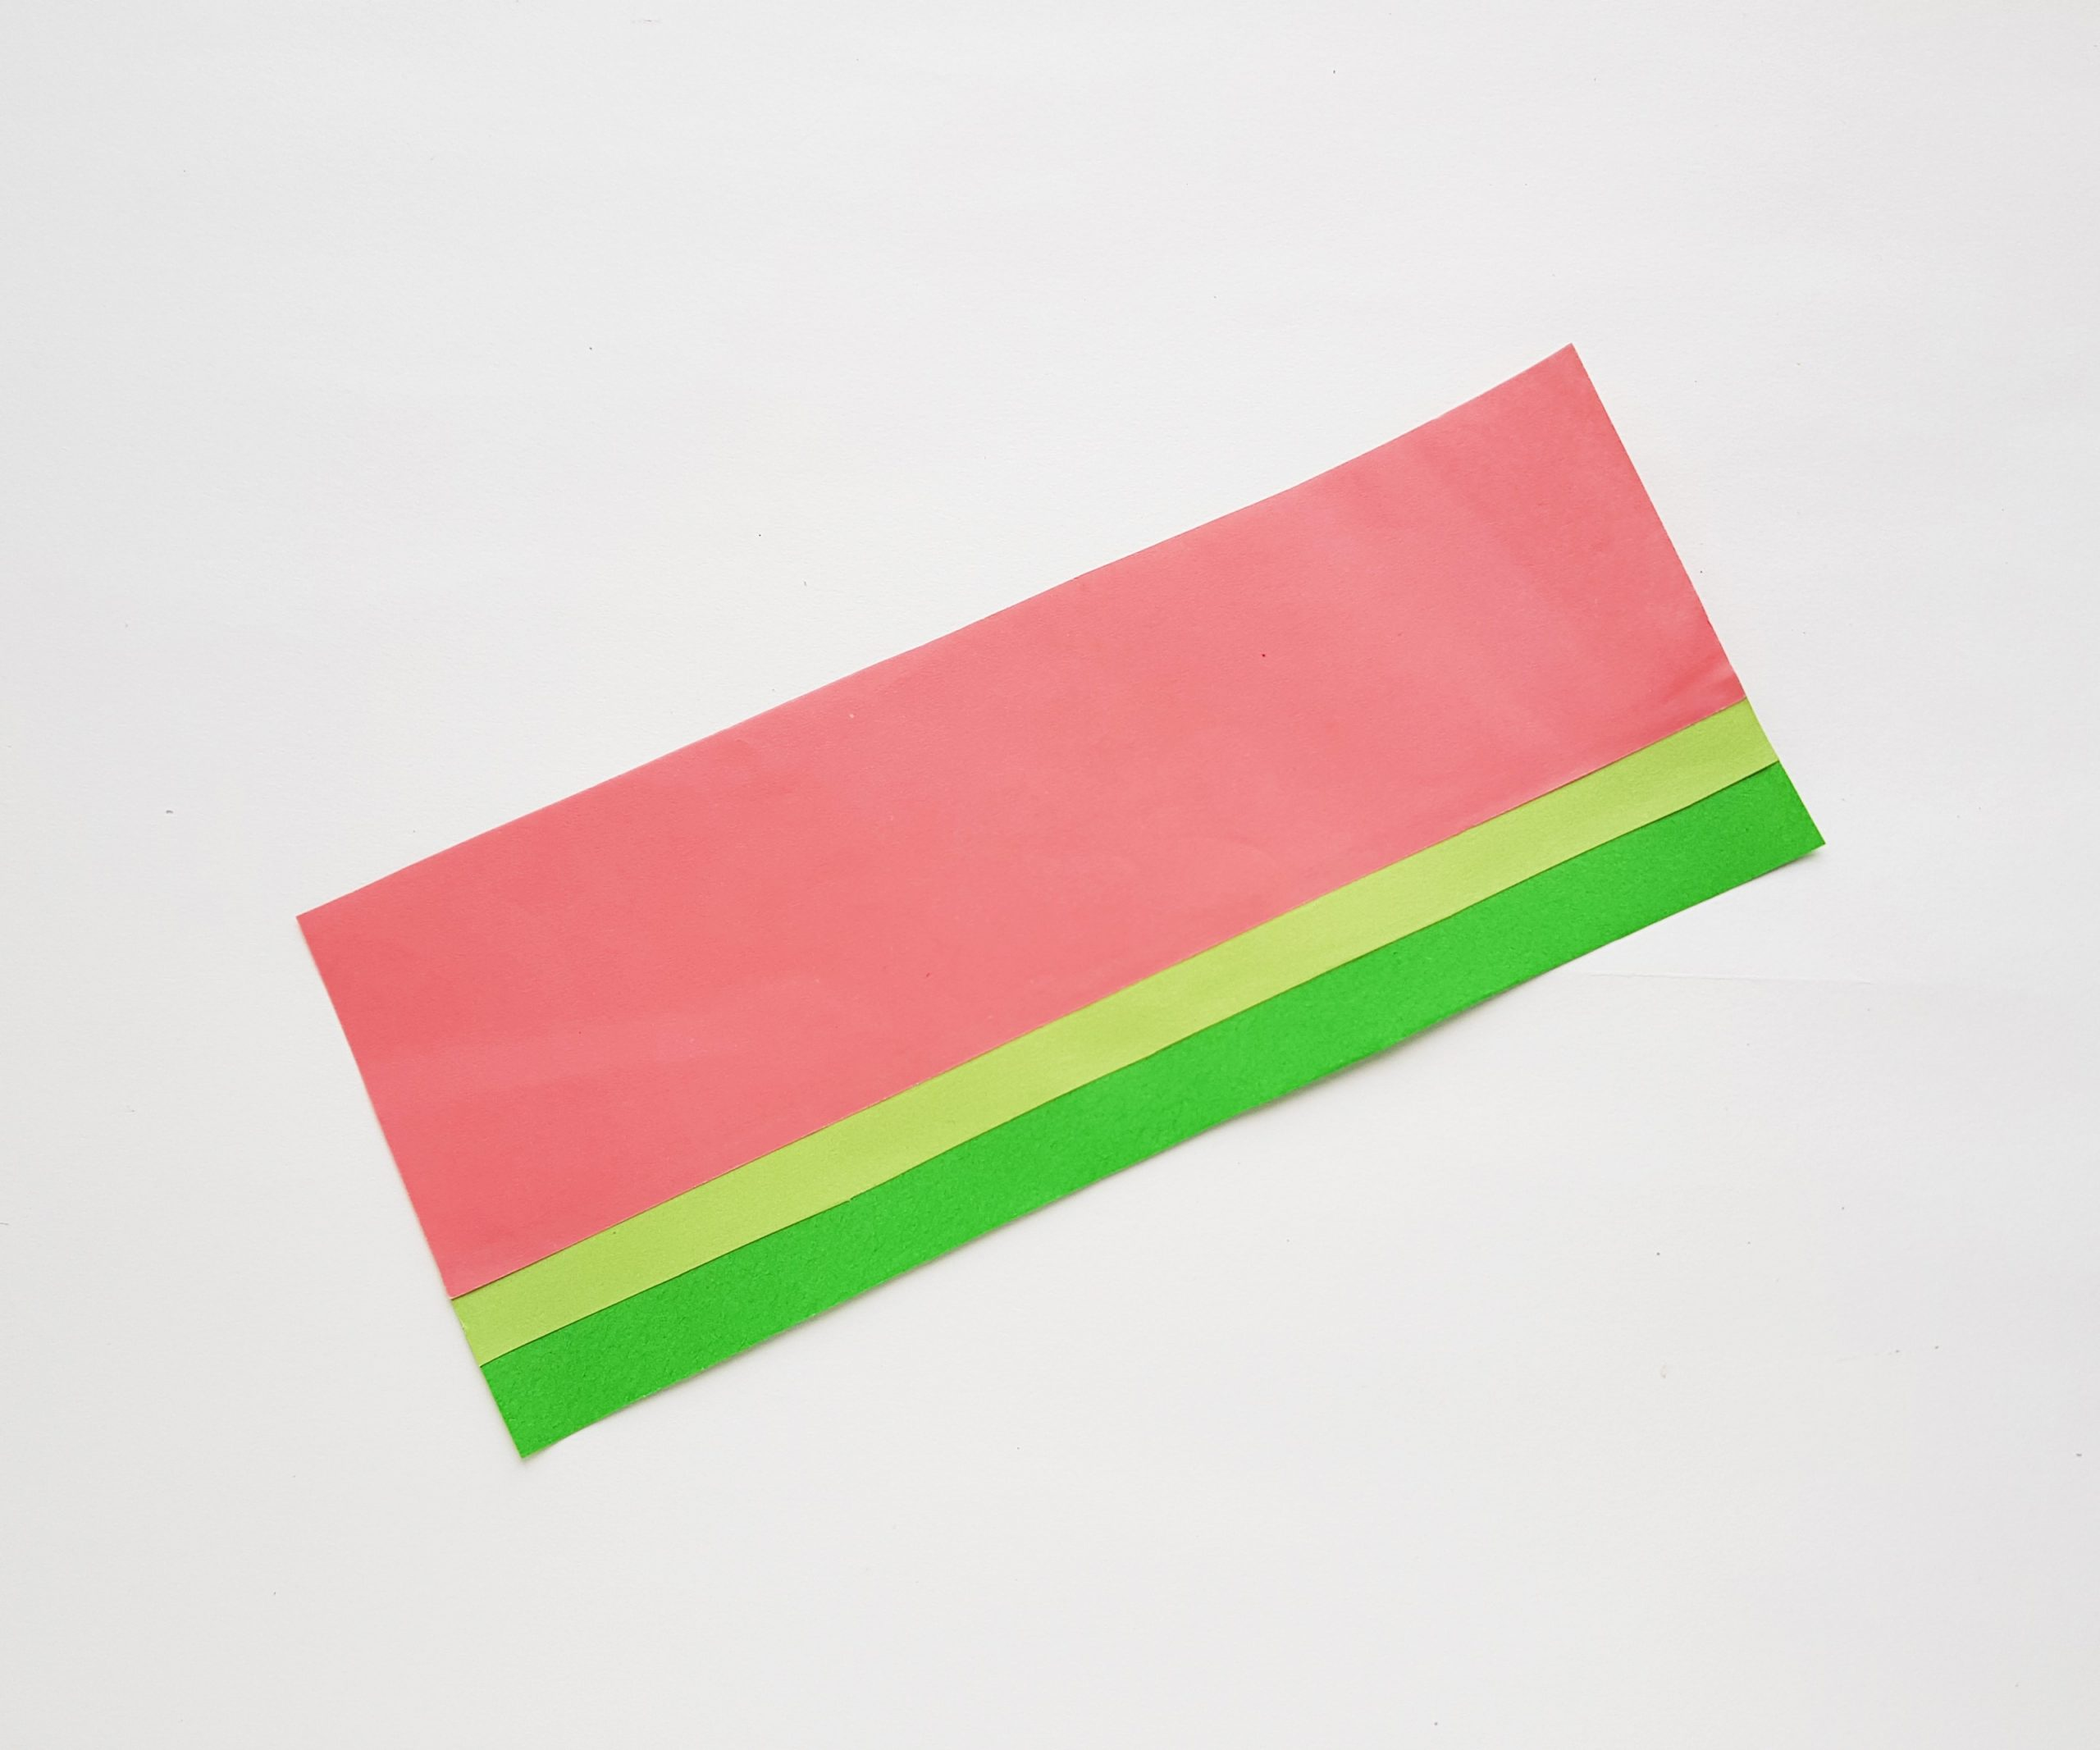 watermelon fan step by step craft with paper and scissors